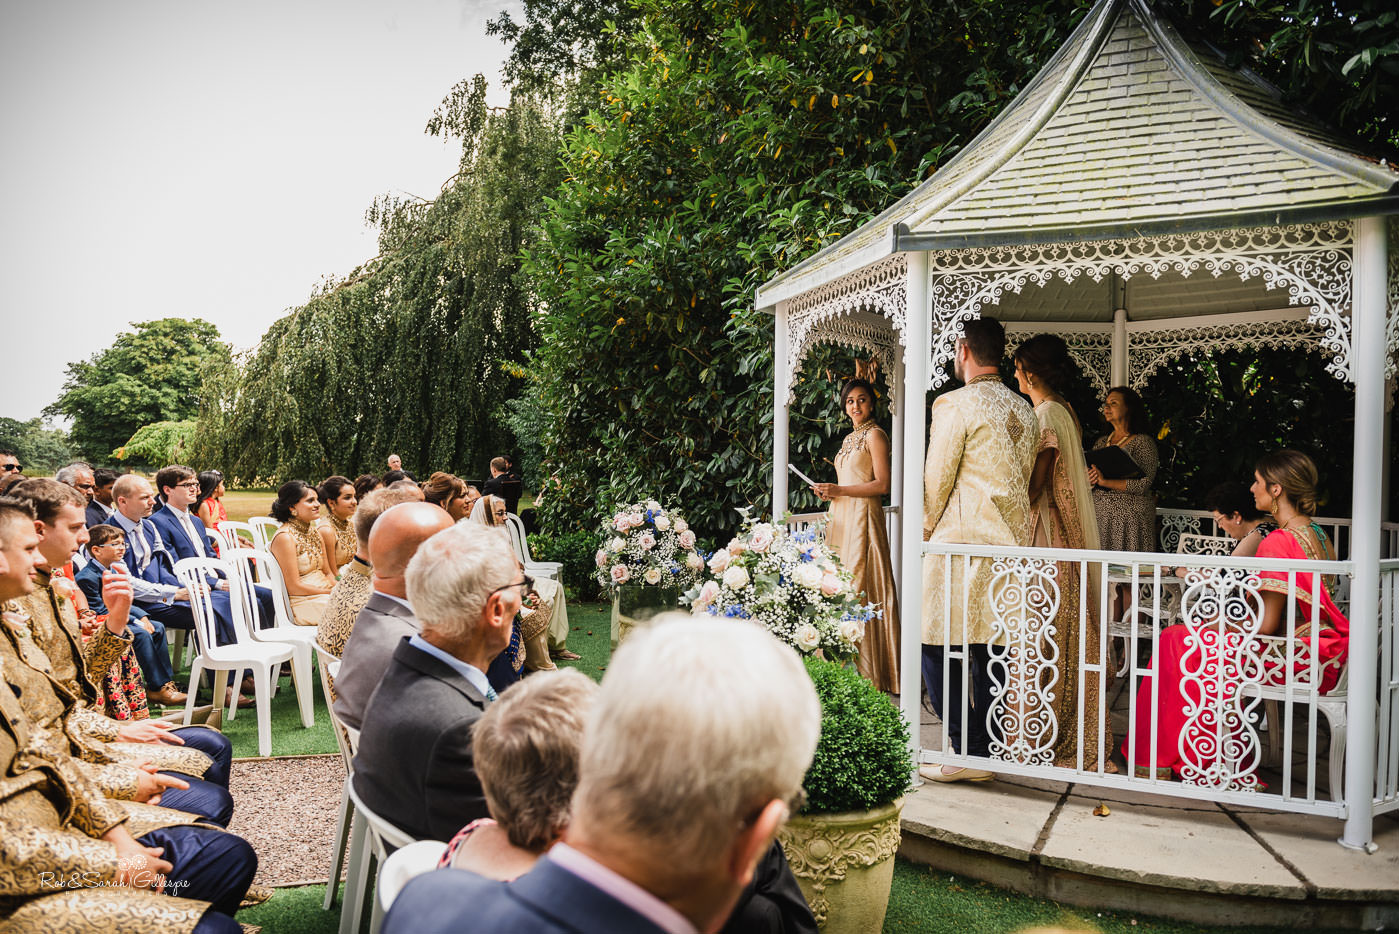 Outdoor wedding ceremony at Pendrell Hall